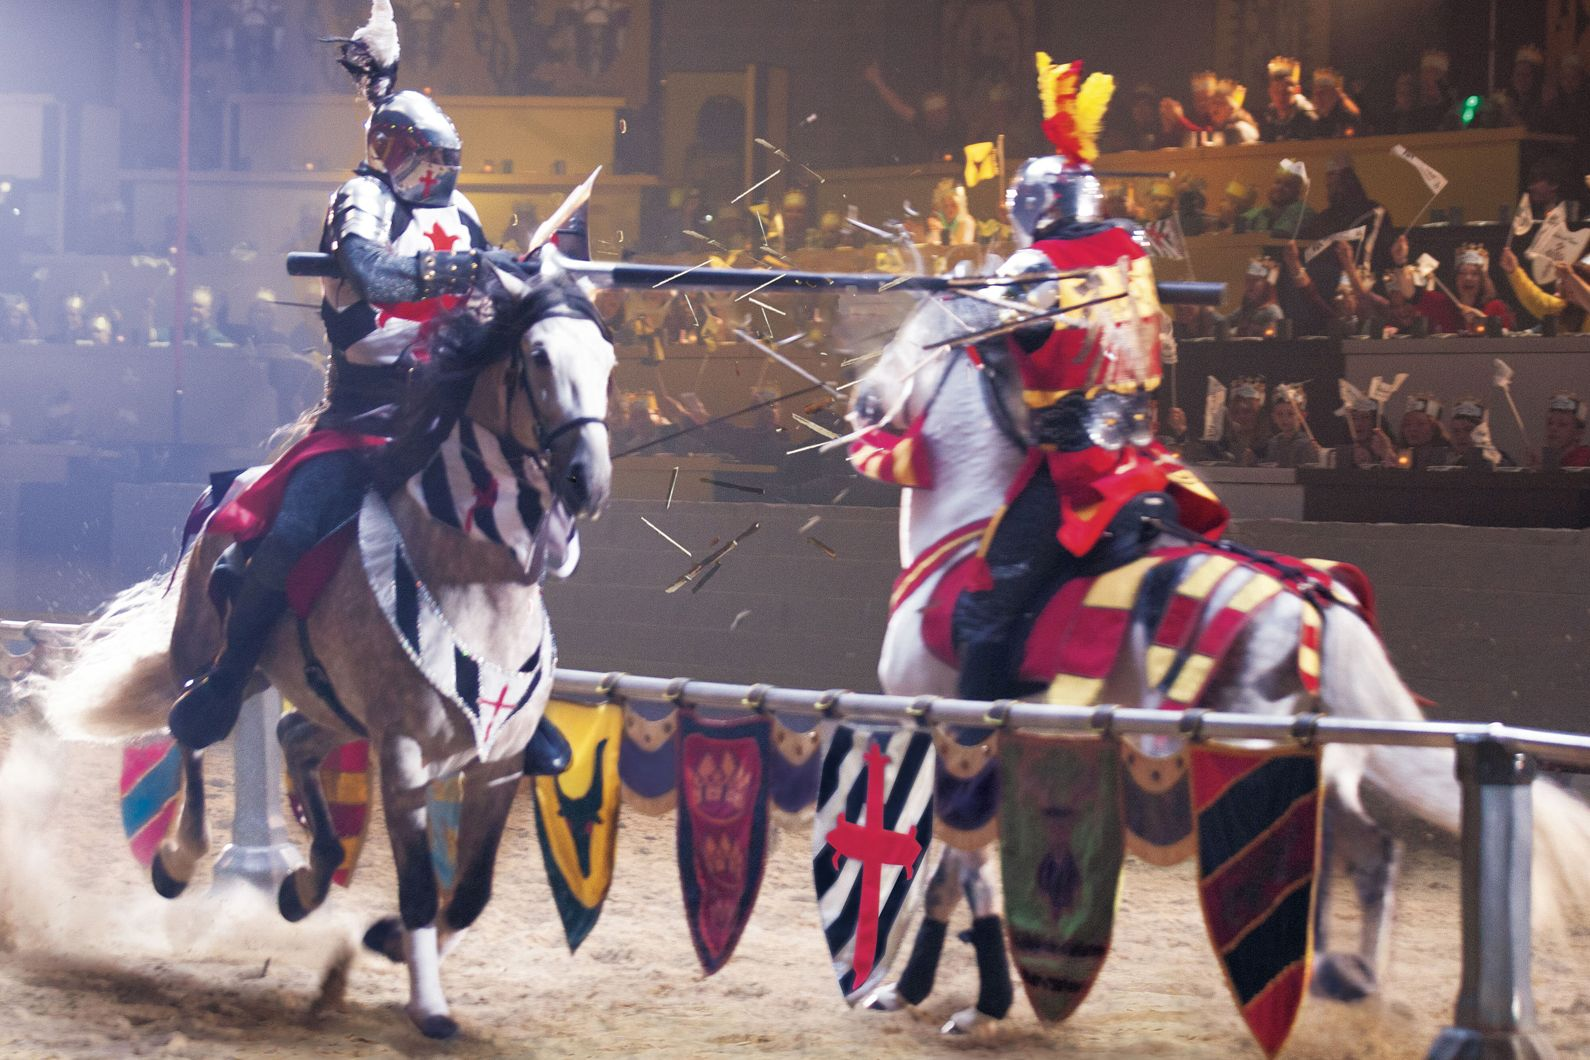 Two knights jousting on horses making impact with lances in arena